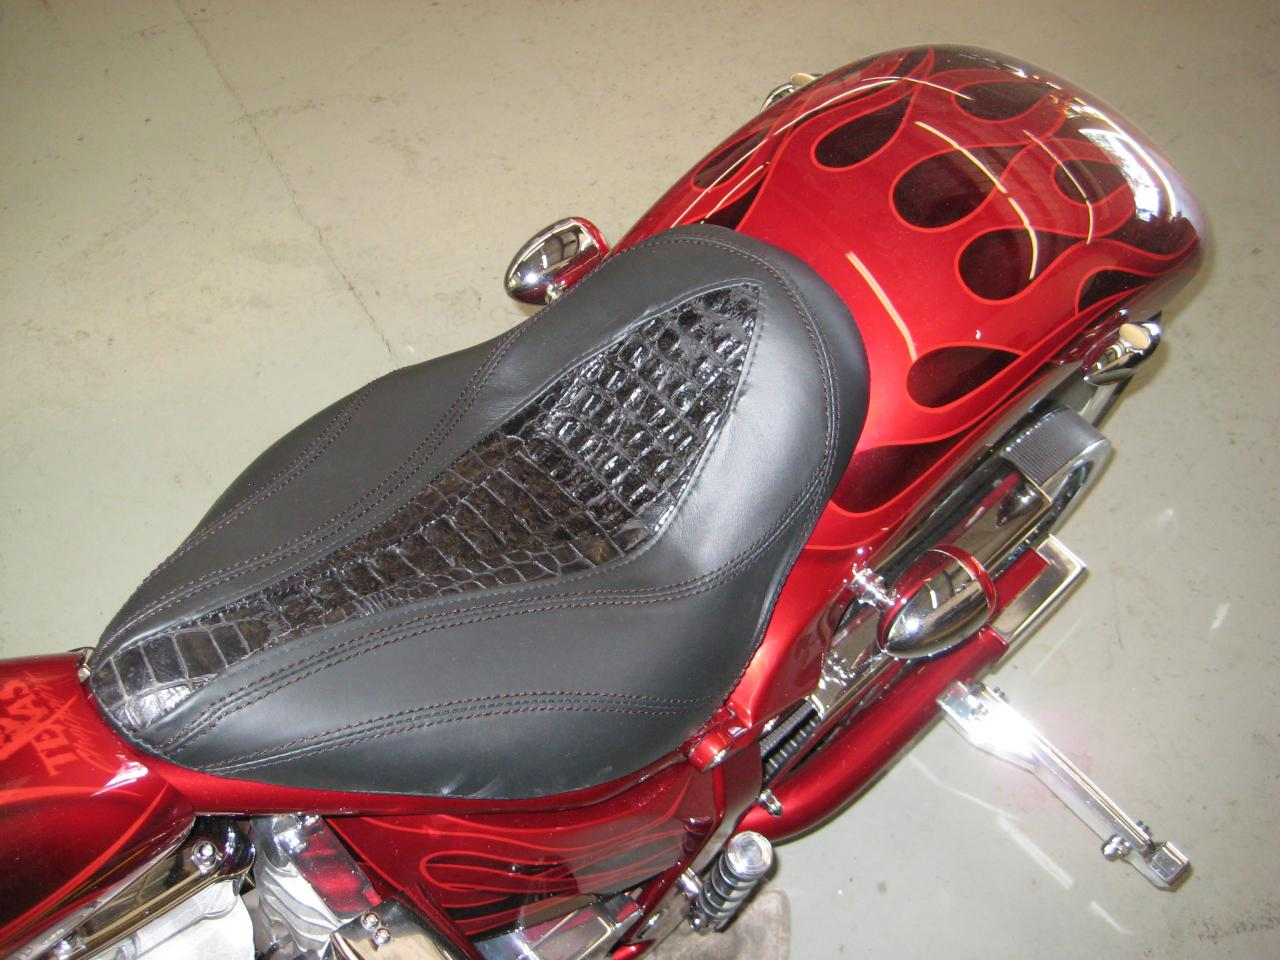 Motorcycle Seat Replacement : Auto upholstery repair classic car restoration shop